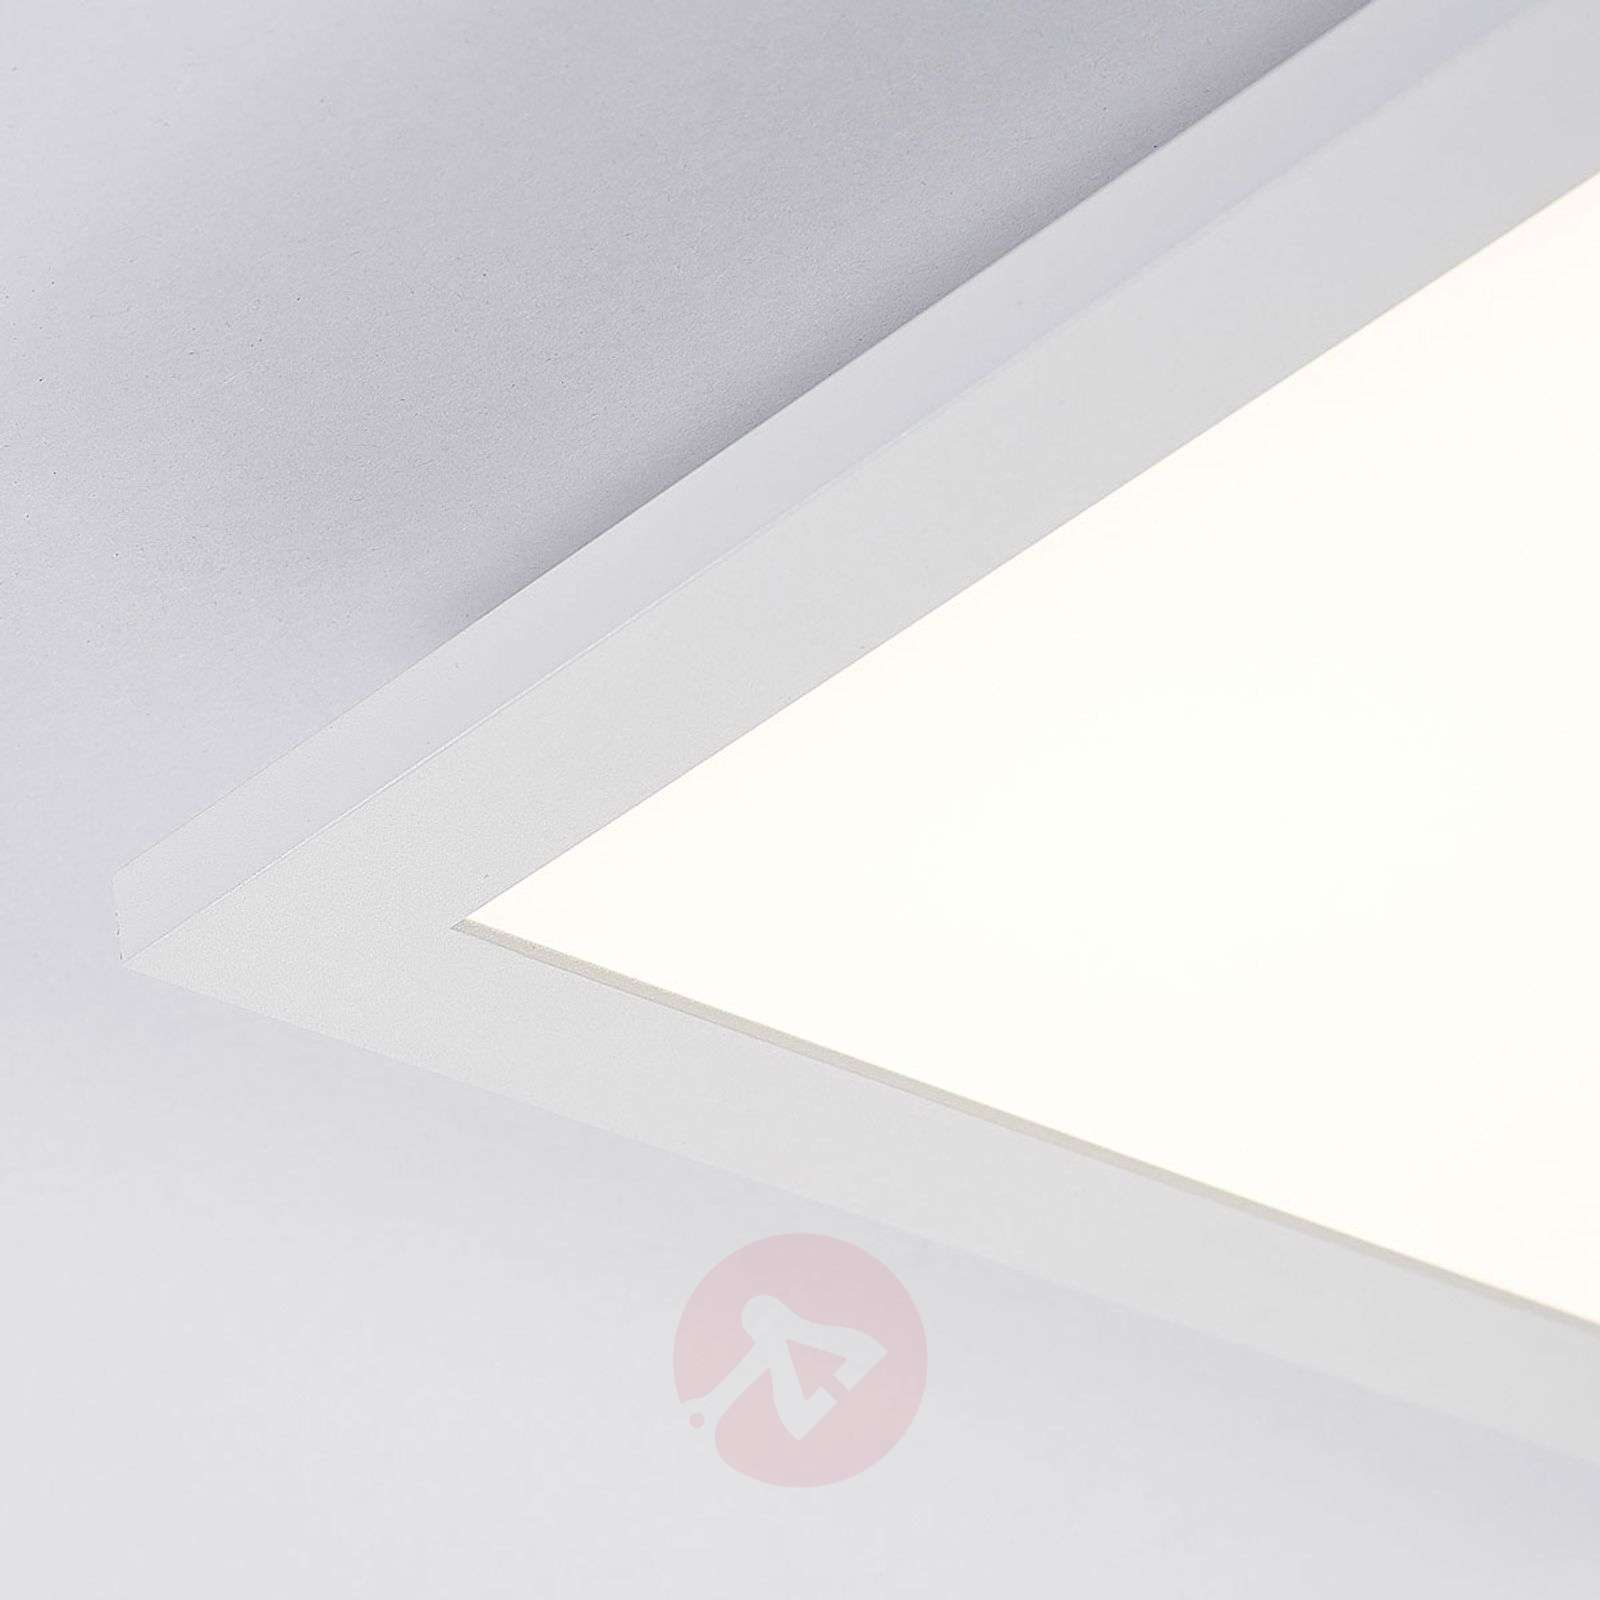 Dimbare LED plafondlamp Lysander m. afst.bed.-9621554-01